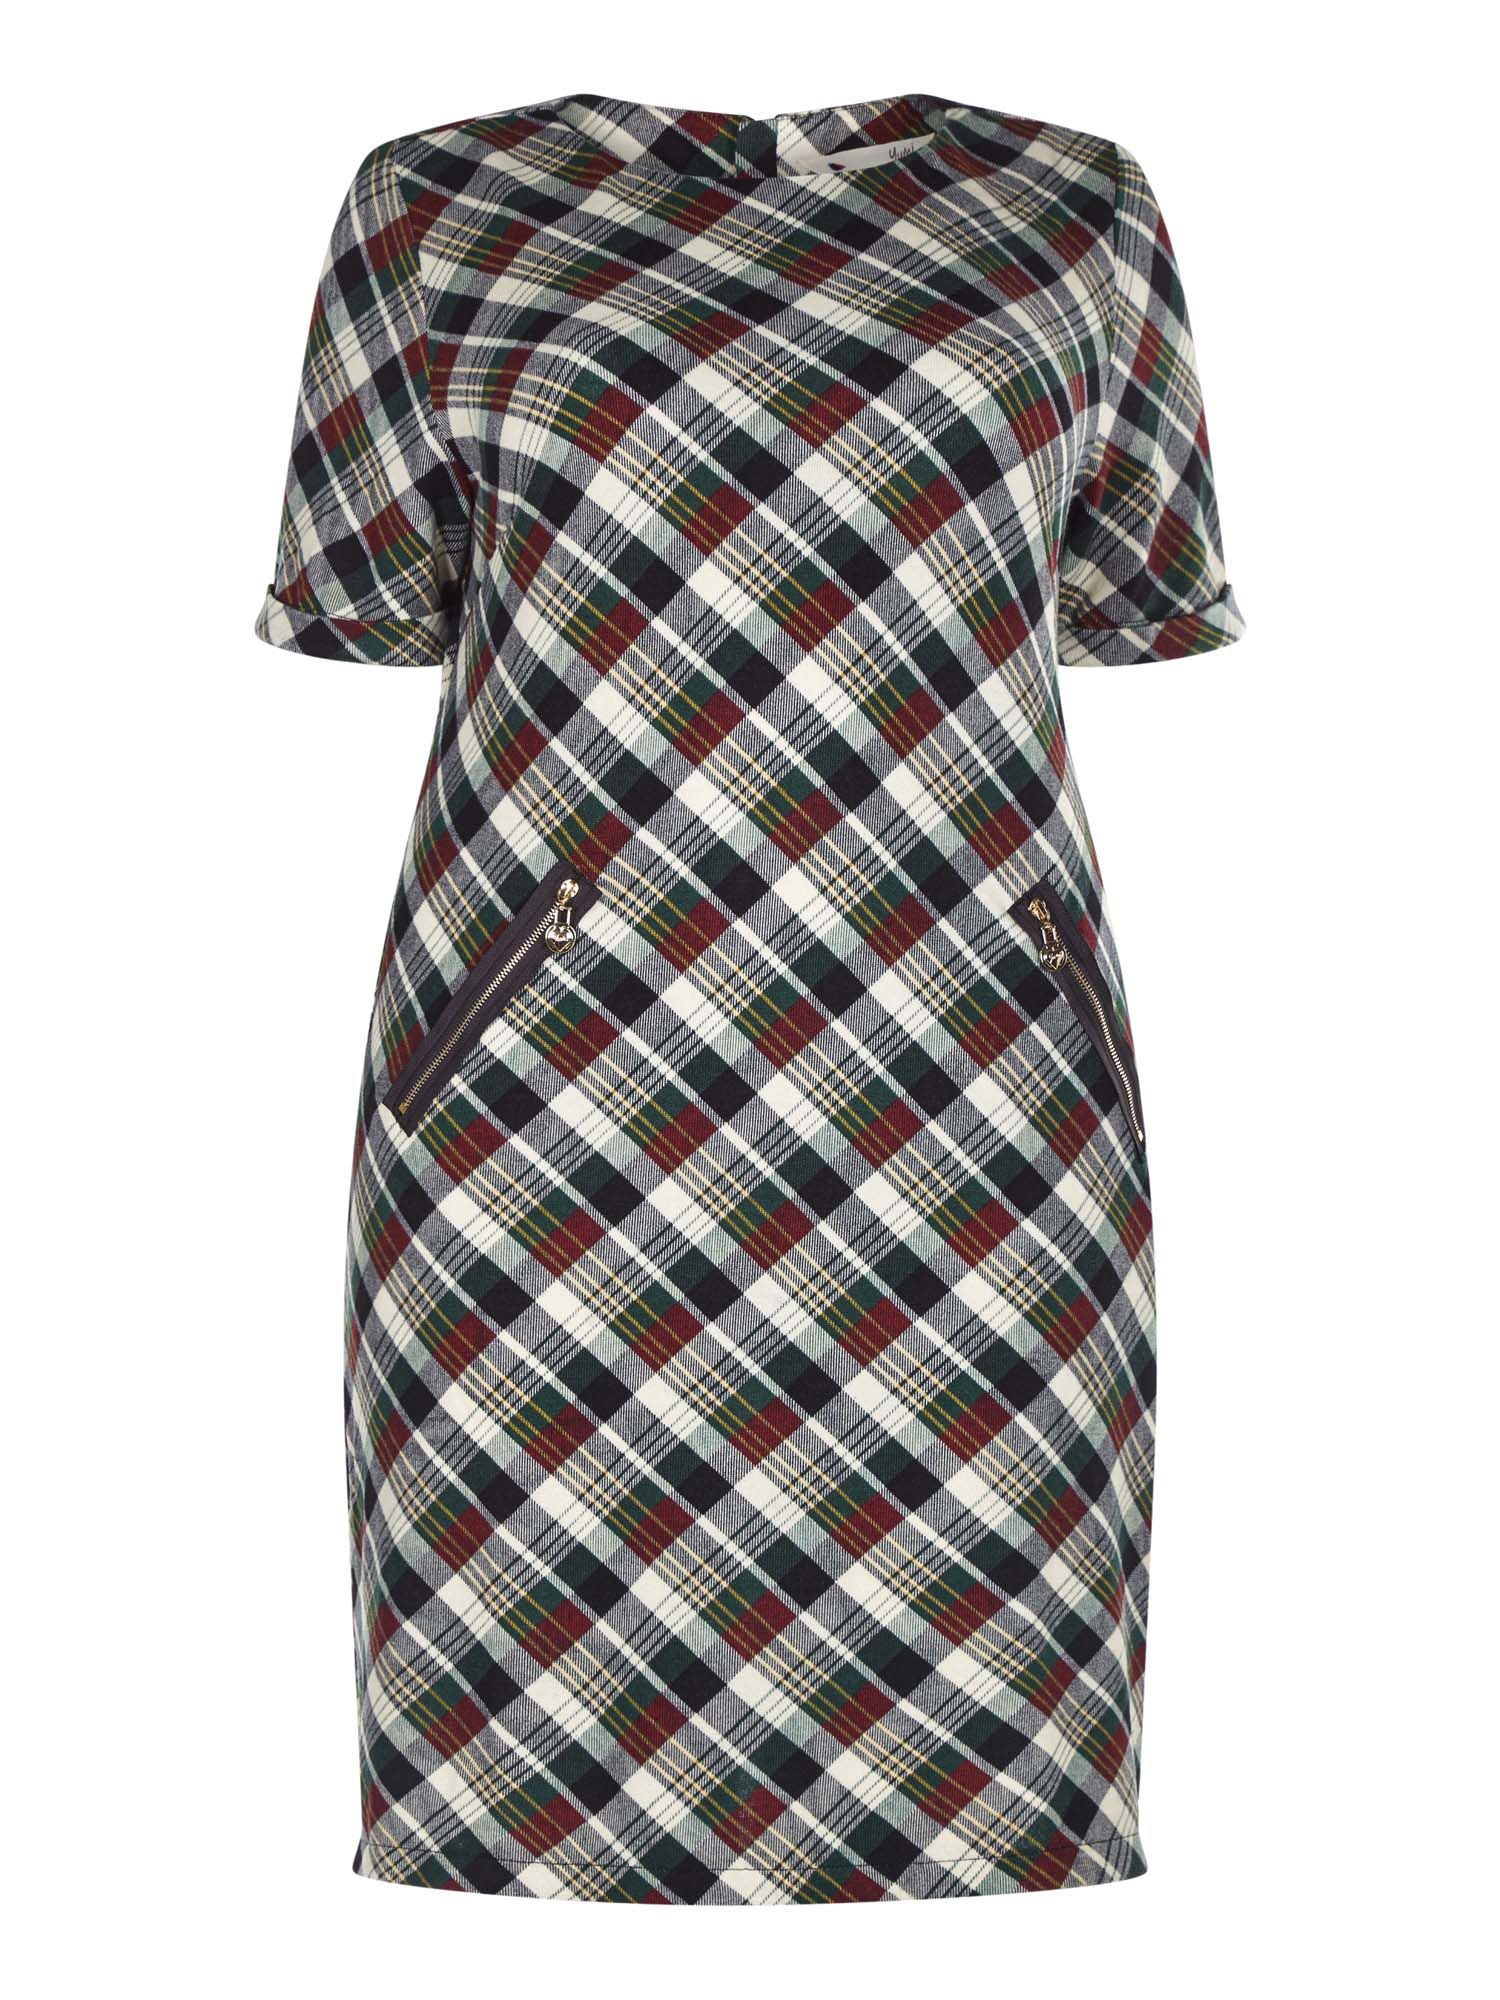 Yumi Curves Checked Tunic Dress With Zipped Pockets, Black